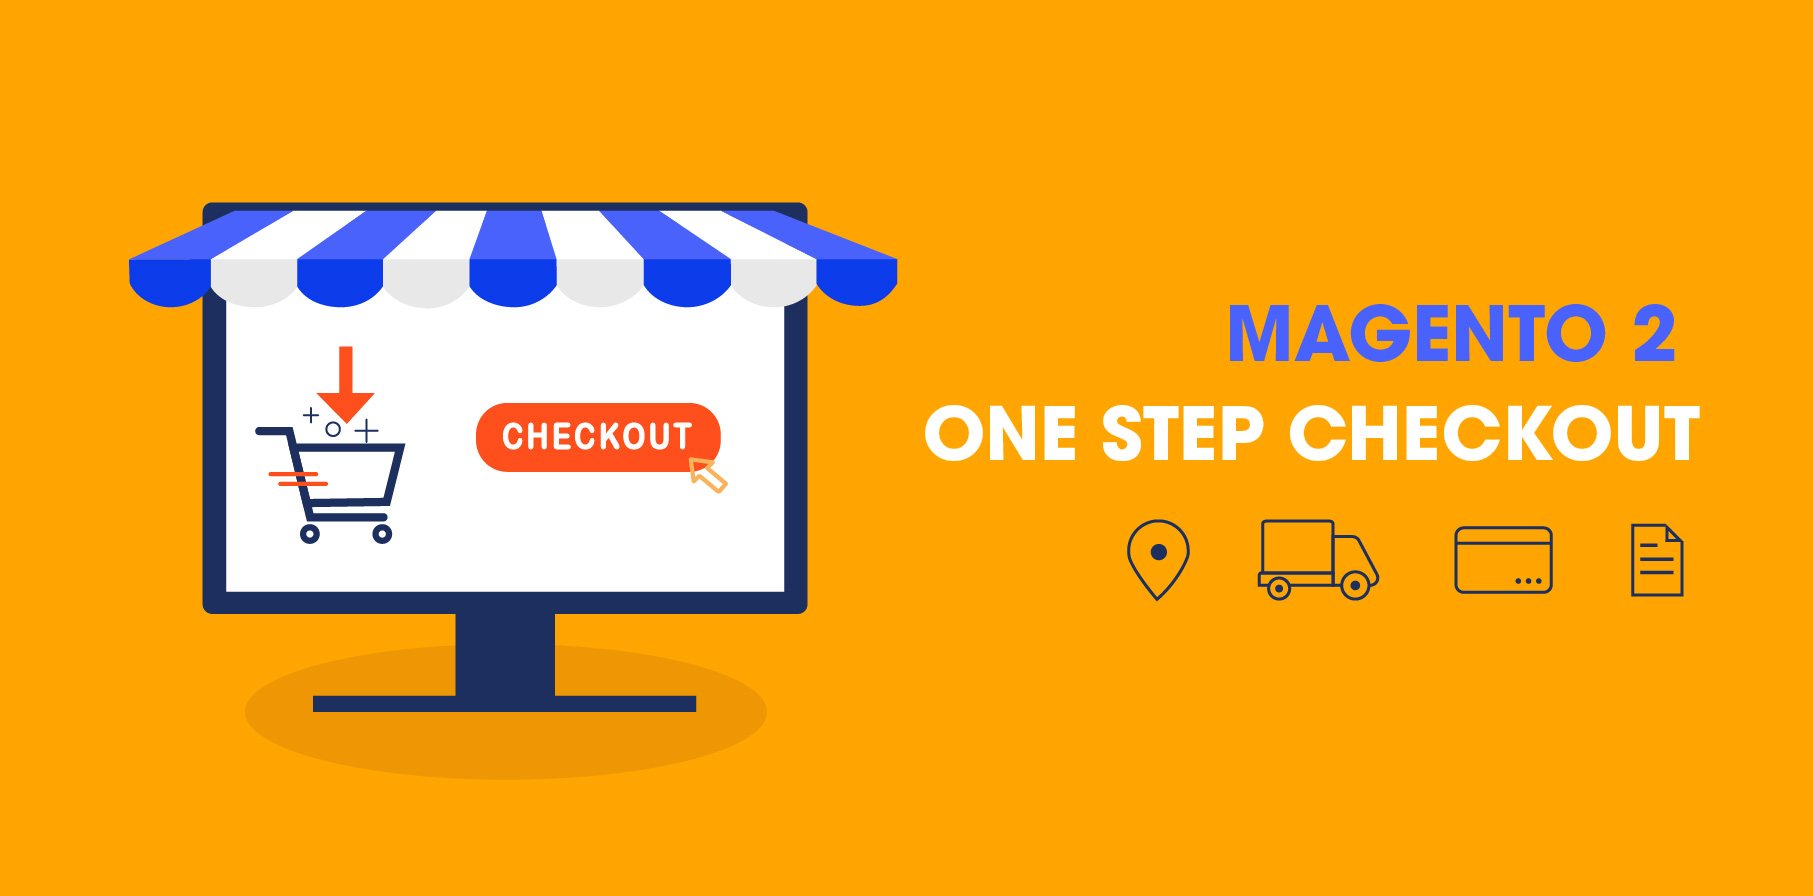 magento-2-one-step-checkout-feature-image